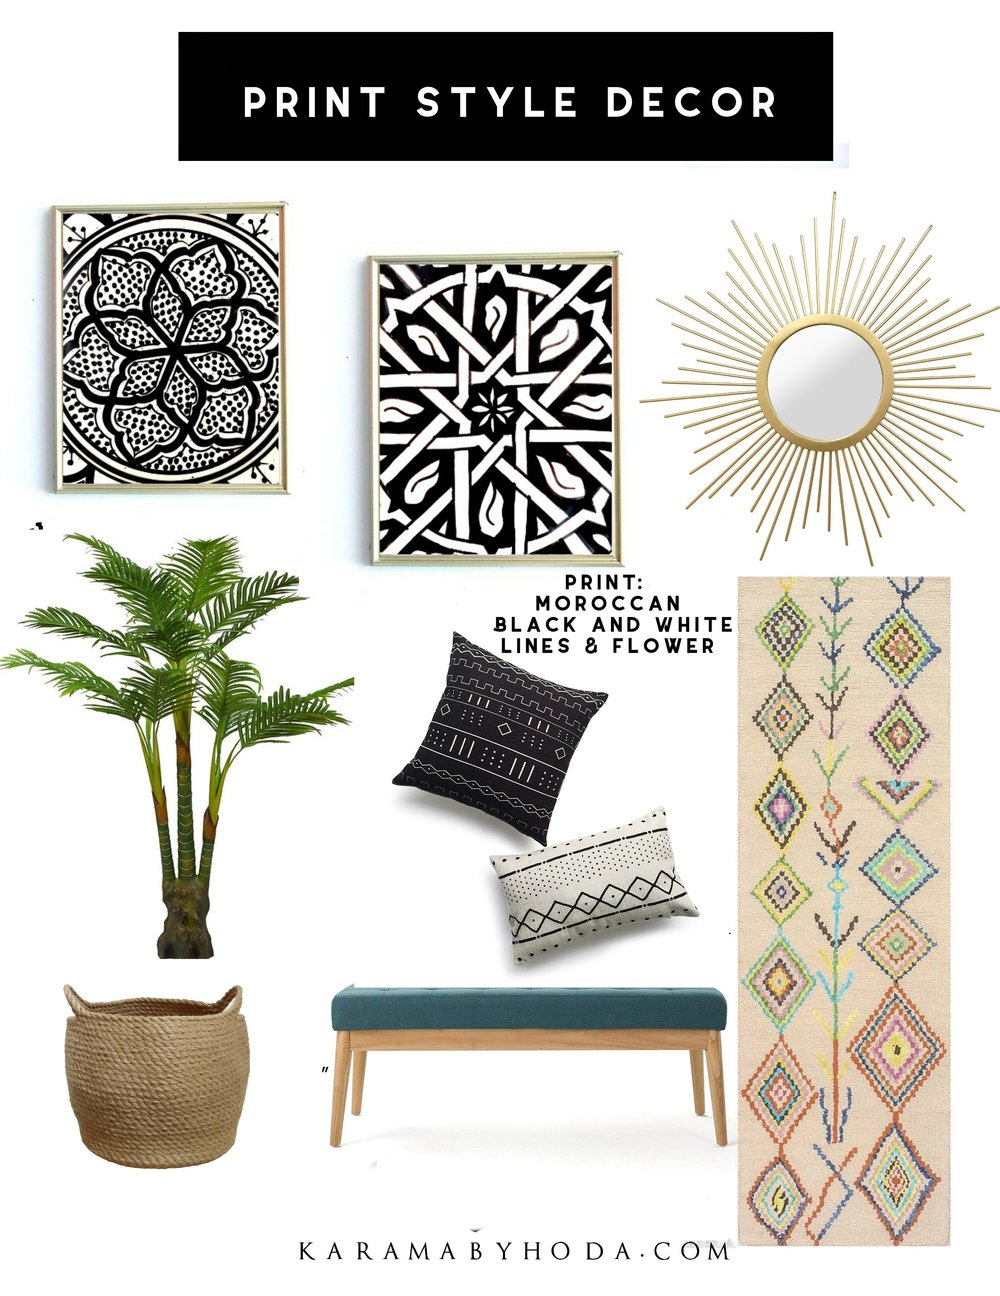 Moroccan Decor Black and White- Print Style Decor- Karama by Hoda.jpg